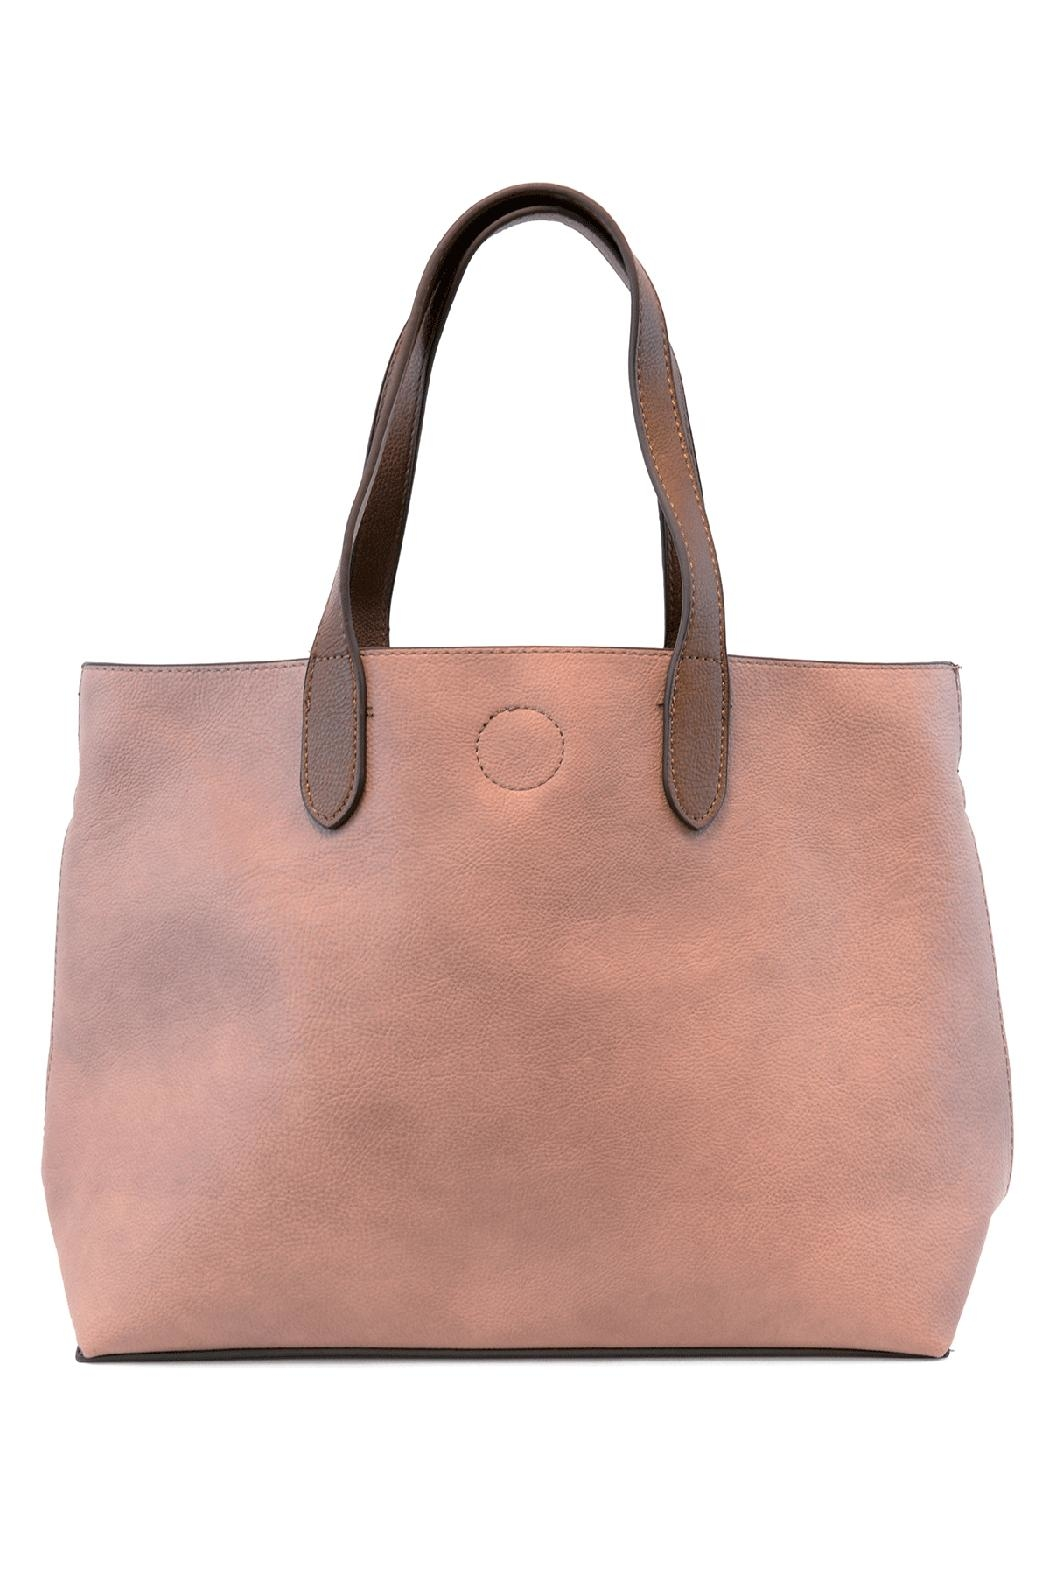 Joy Susan Accessories Mariah Convertible Tote - Main Image